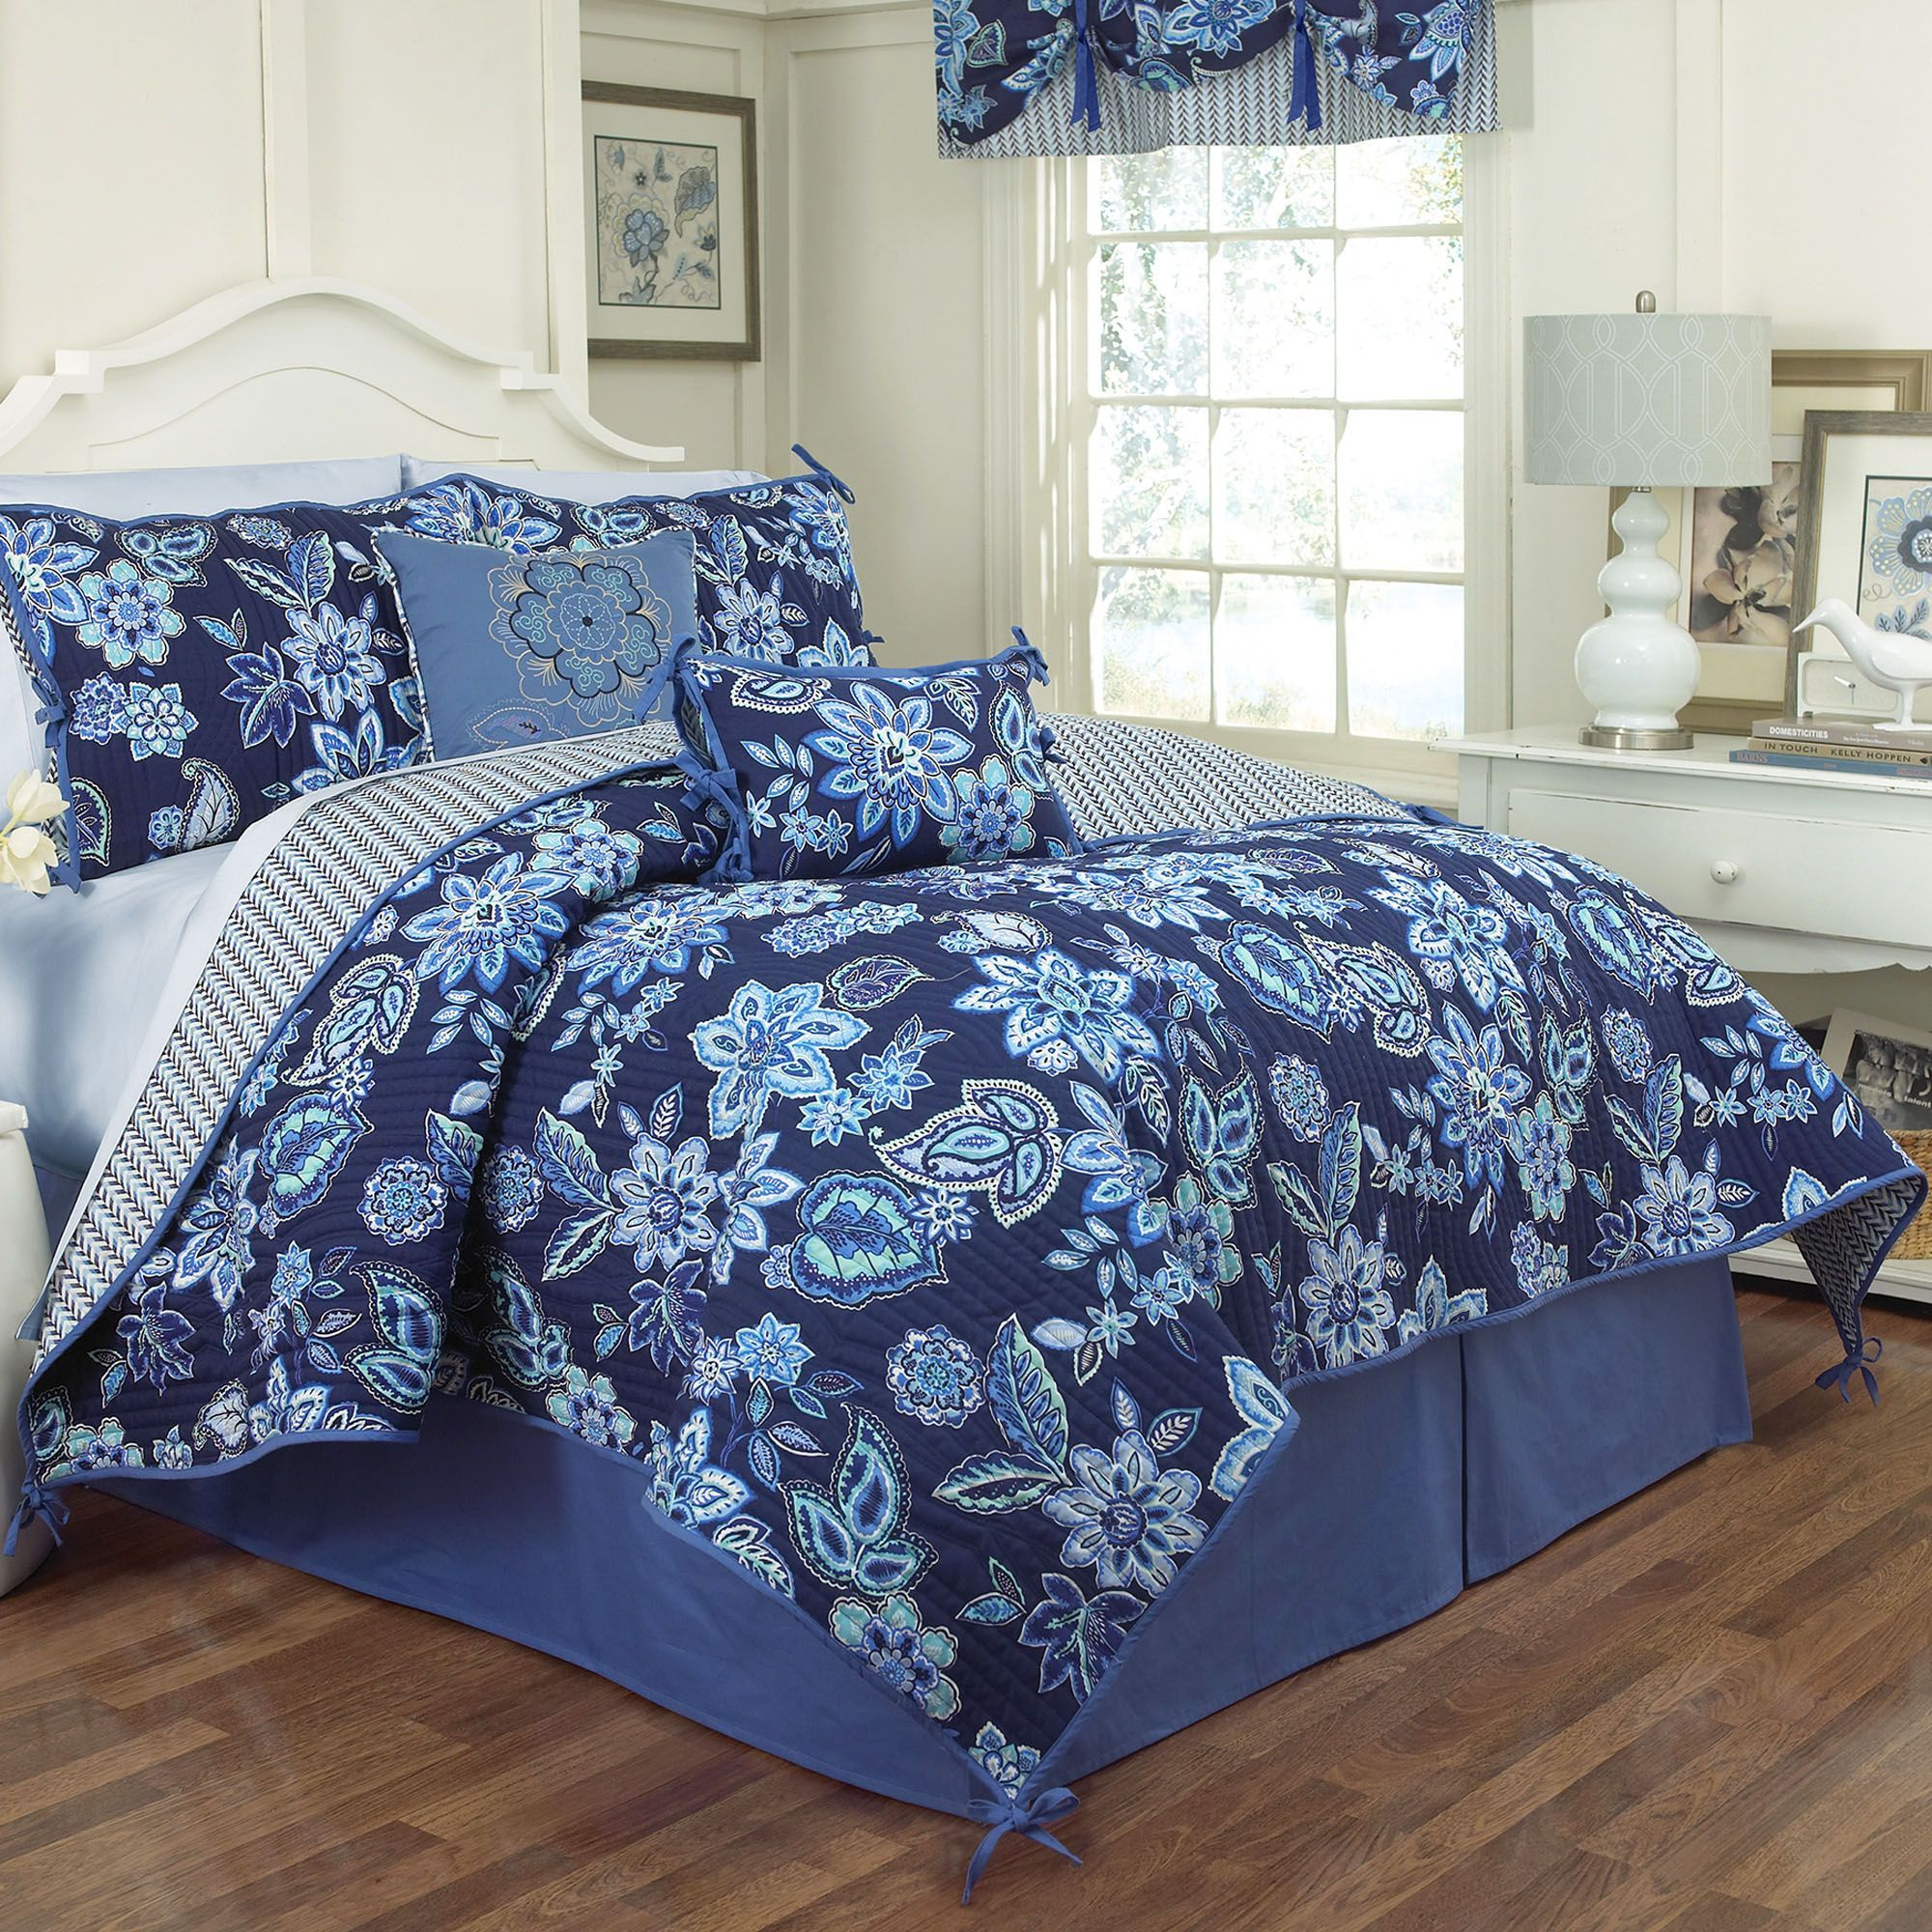 Charismatic Reversible Navy Blue Quilt Set By Waverly